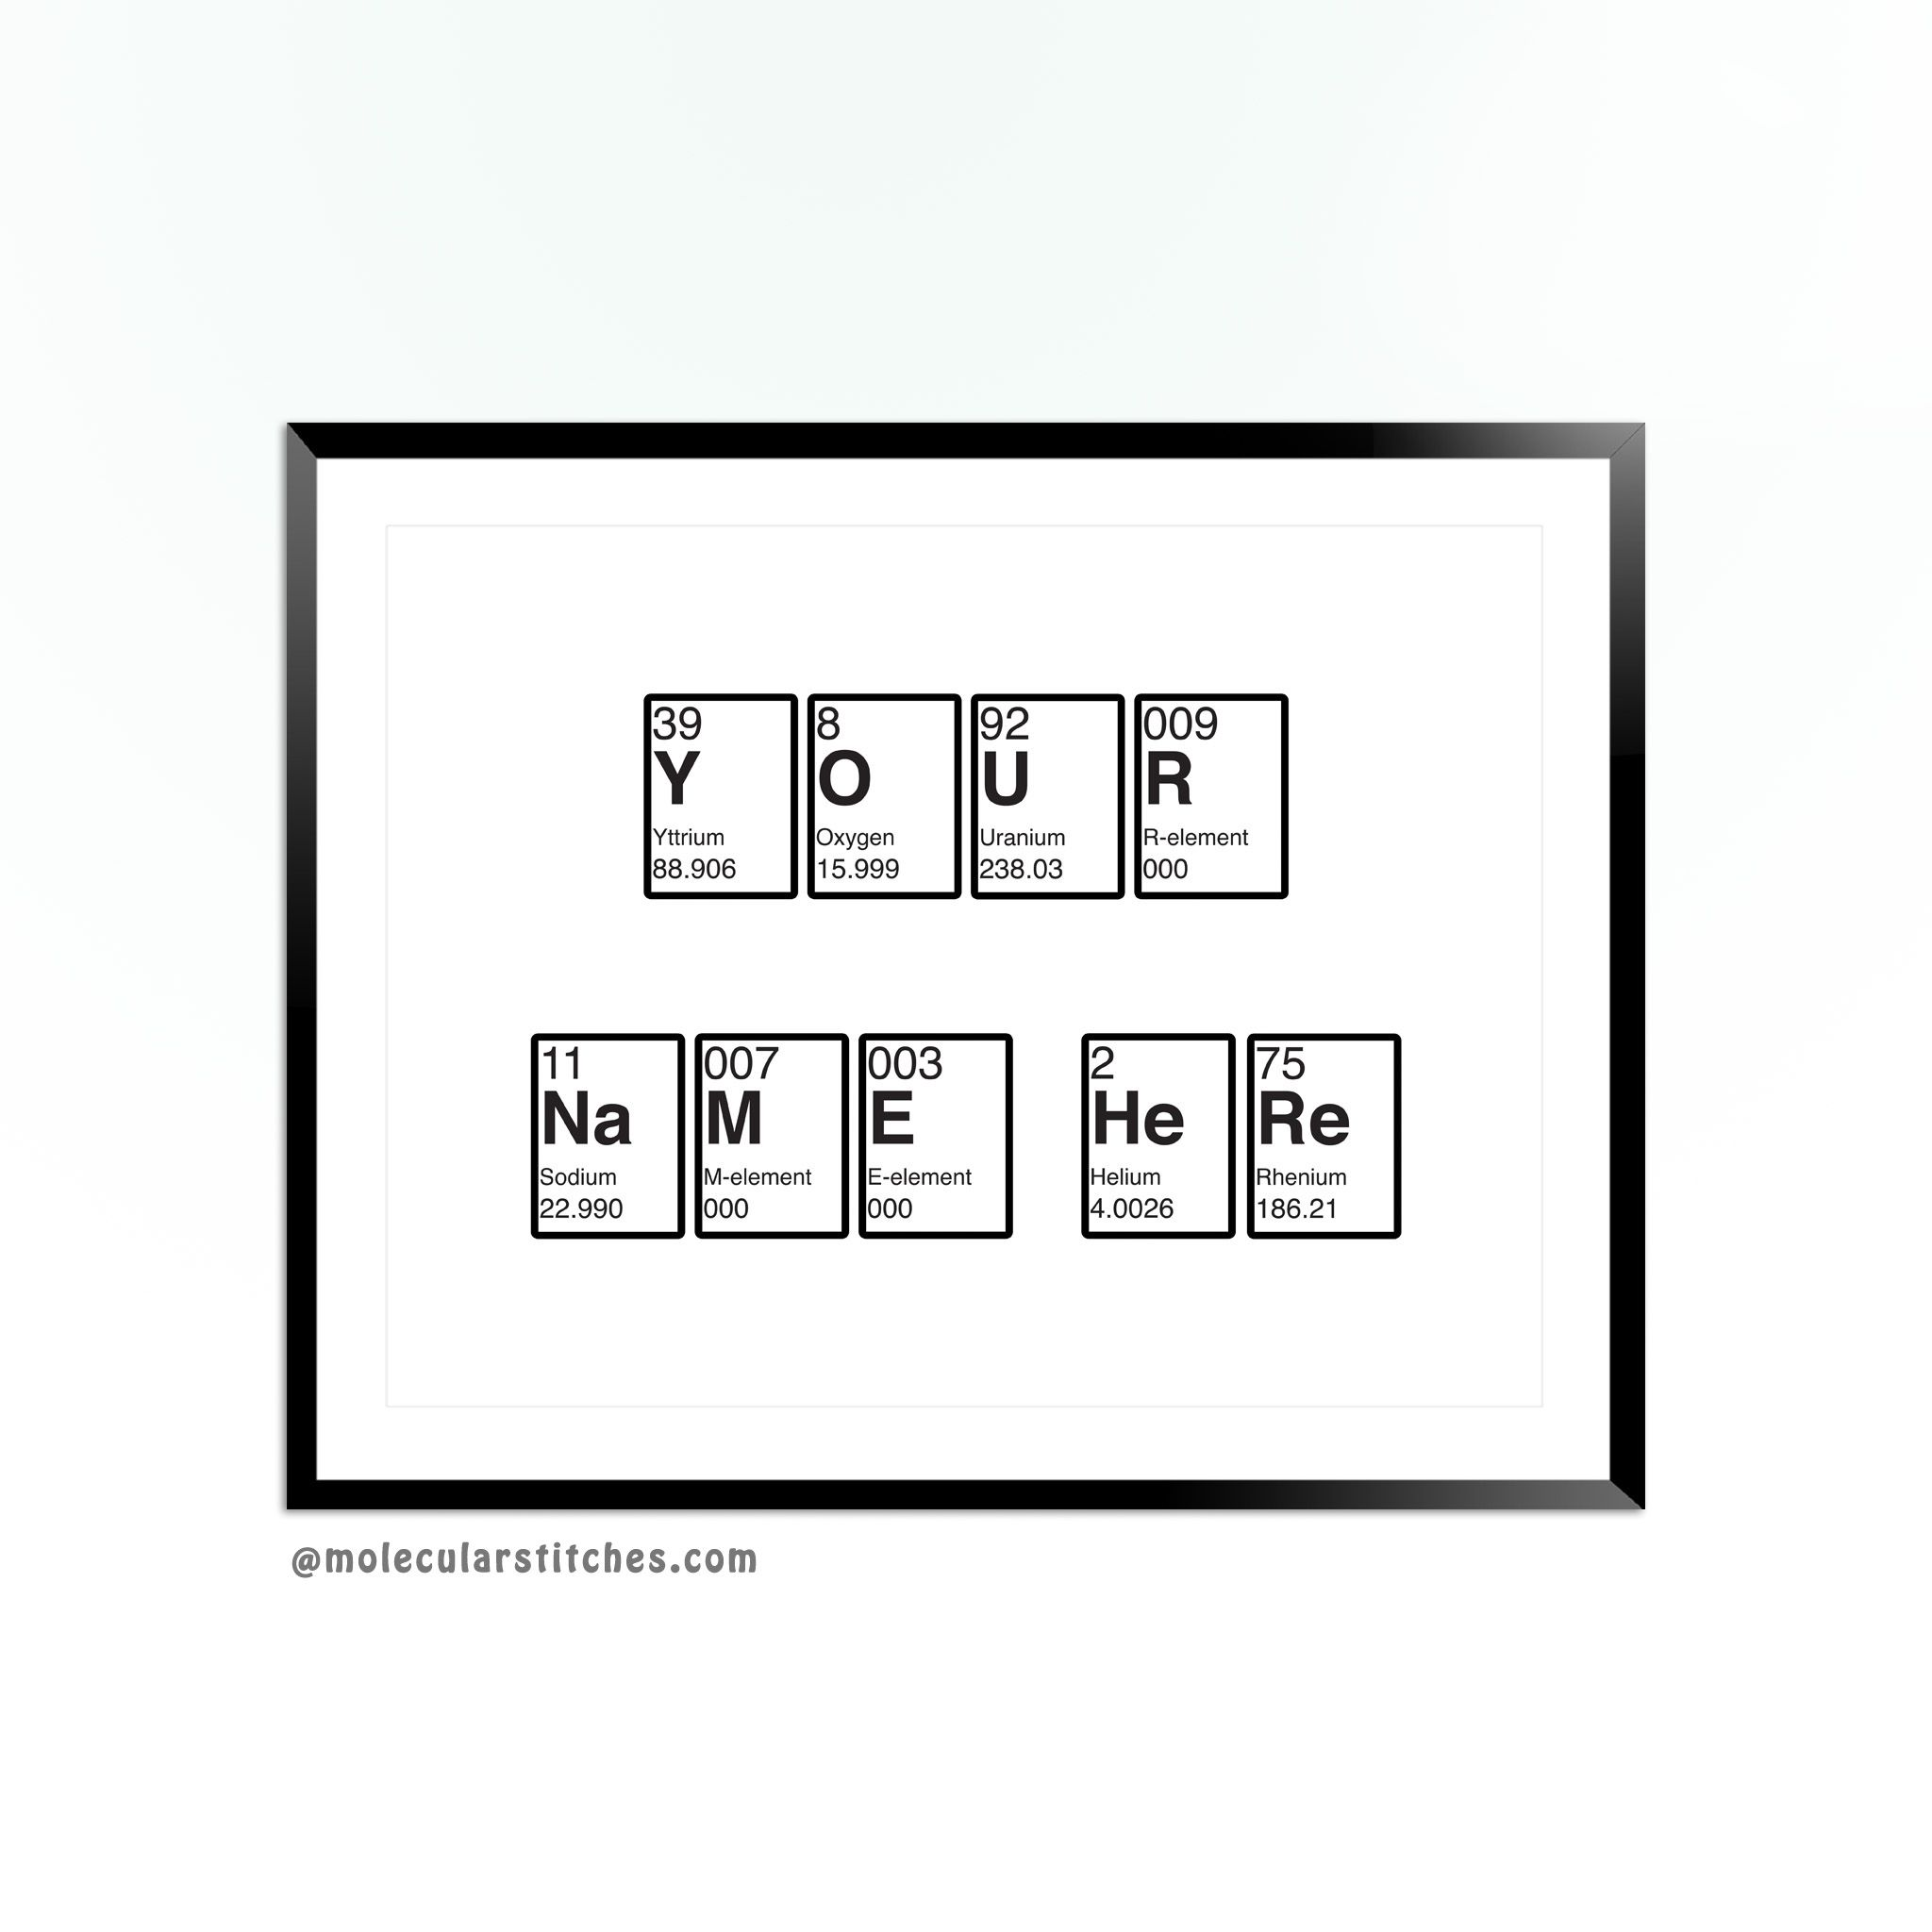 Personalized periodic table of elements poster, science